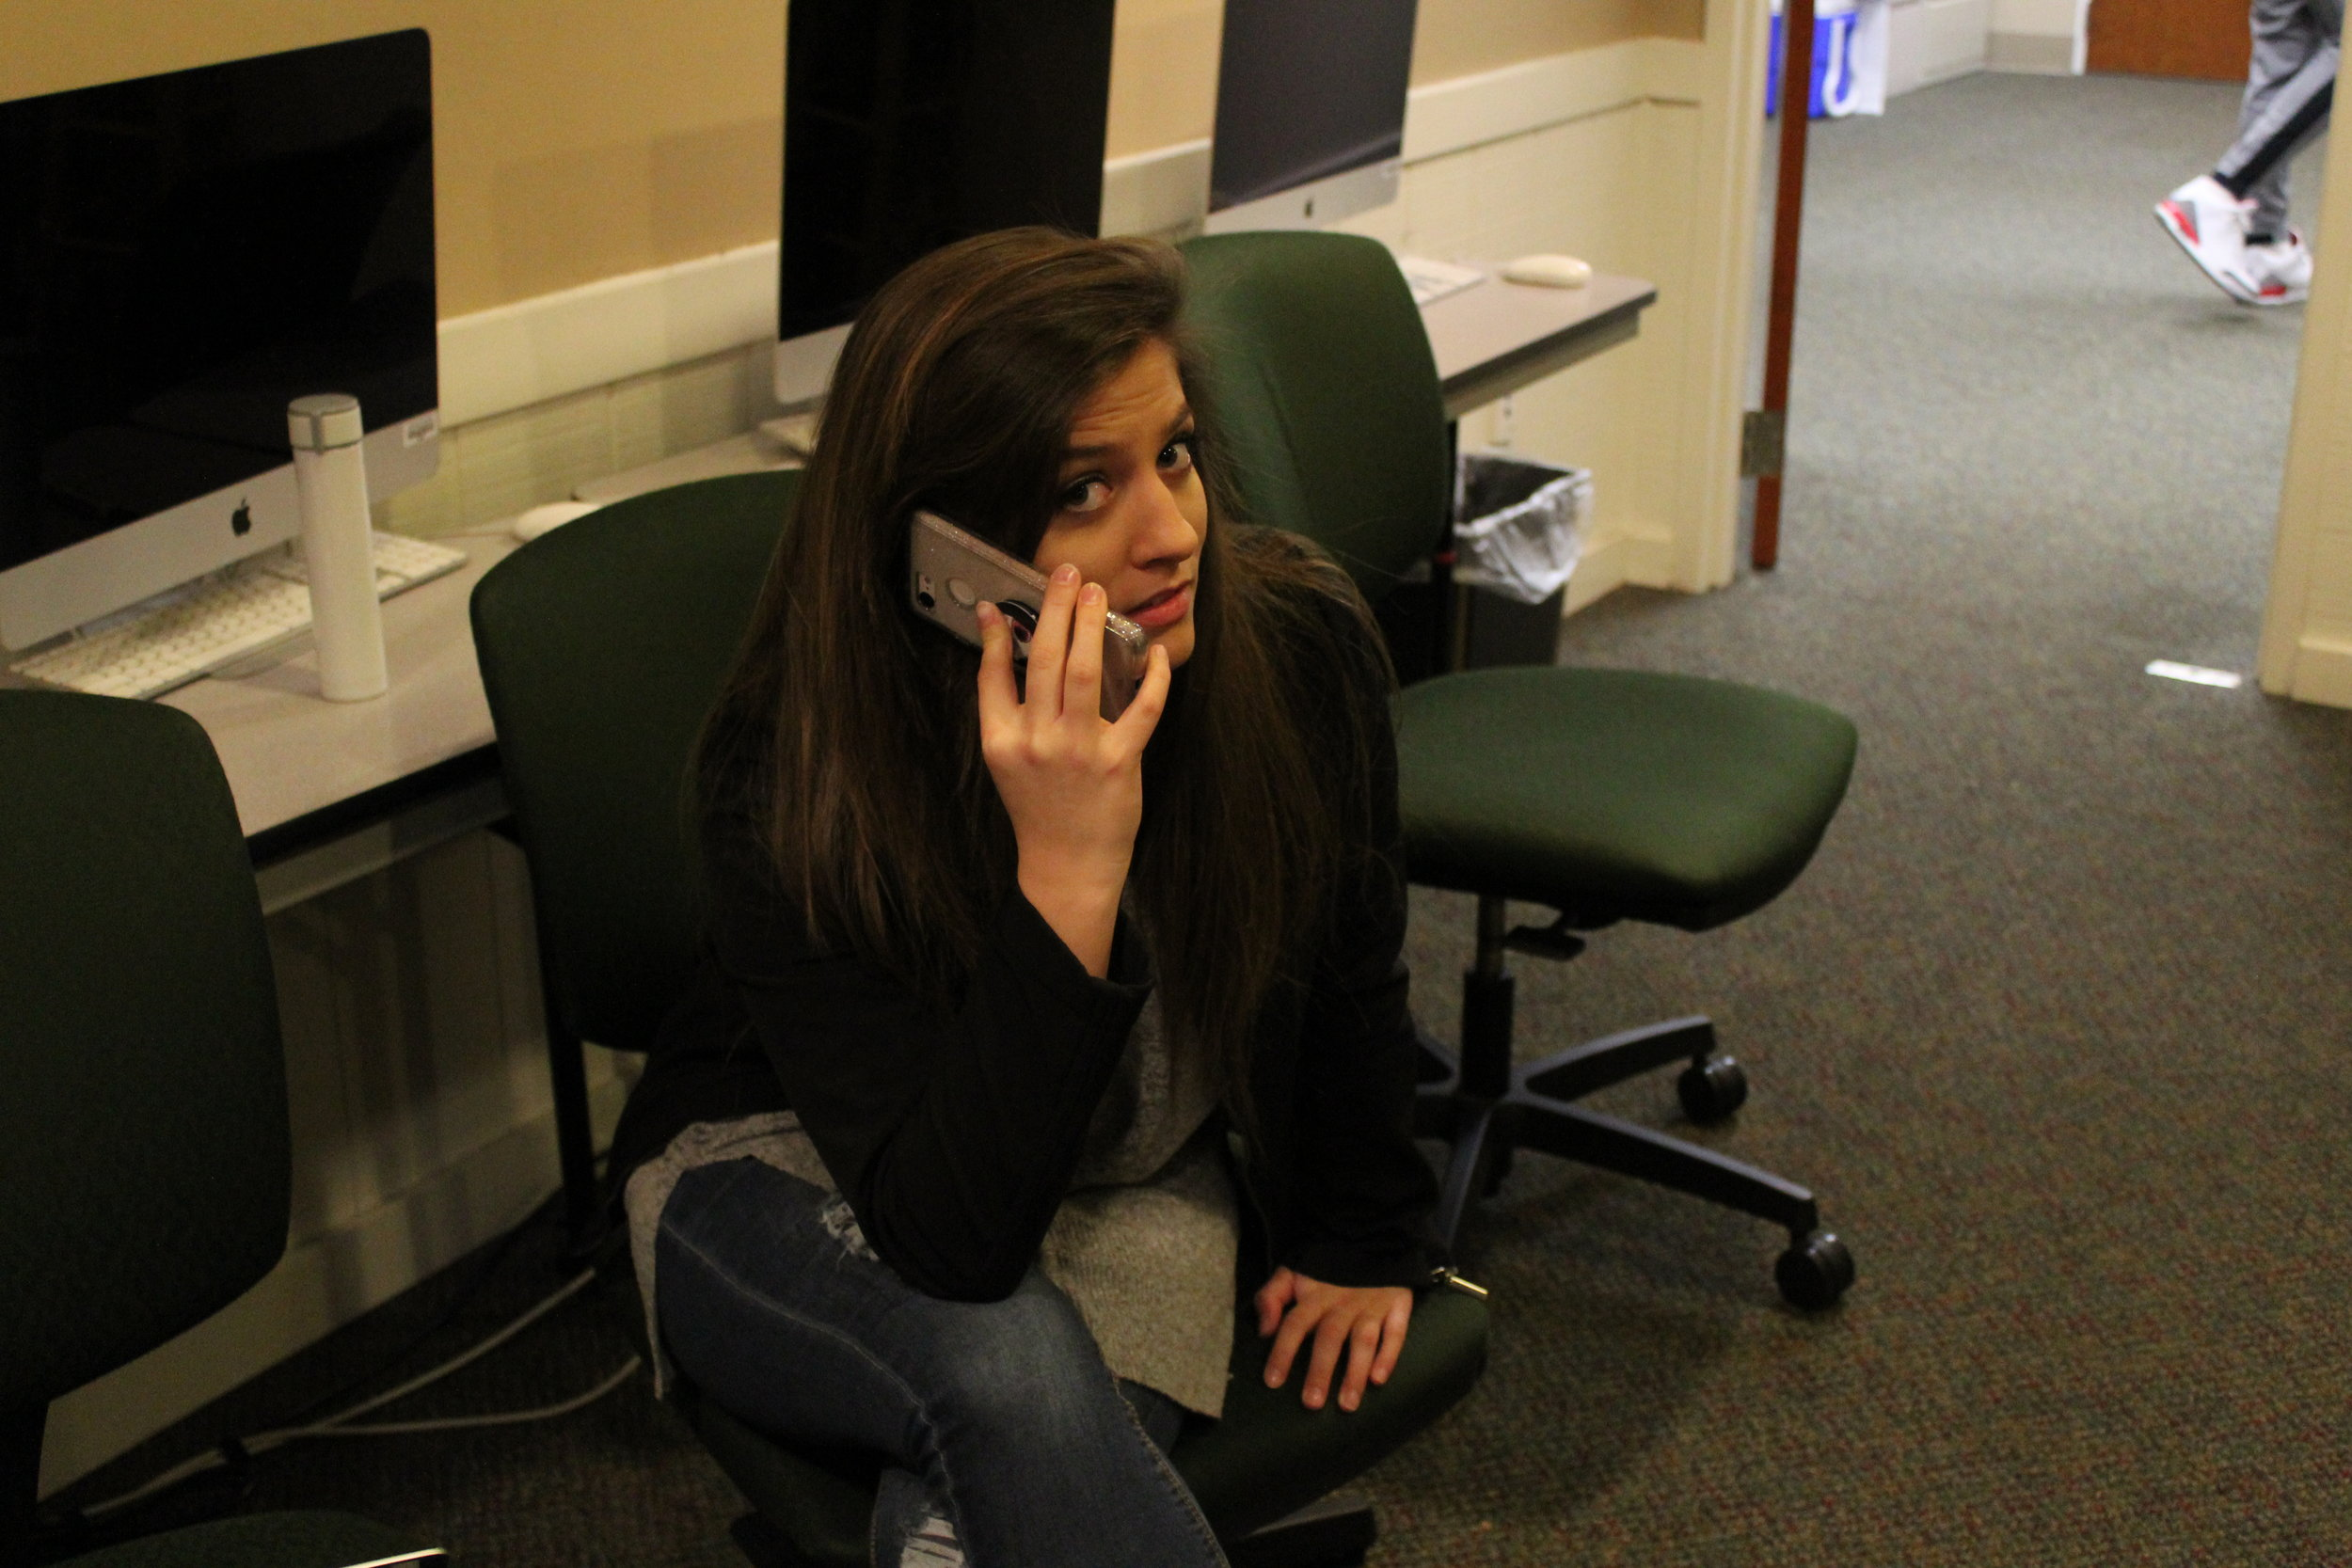 Sophomore, Vivian Wortkoetter, is caught on the phone talking to her friend.